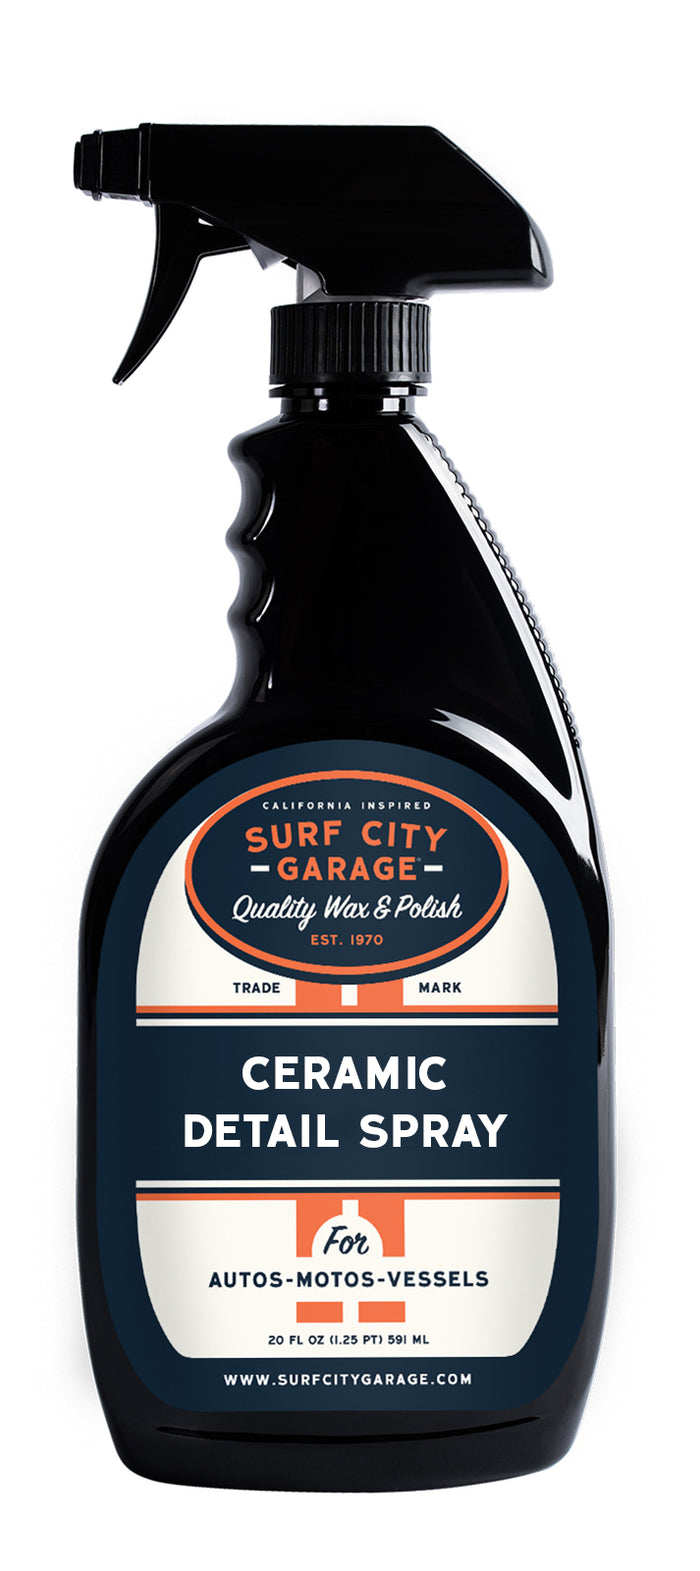 NEW LOOK! Ceramic Detail Spray